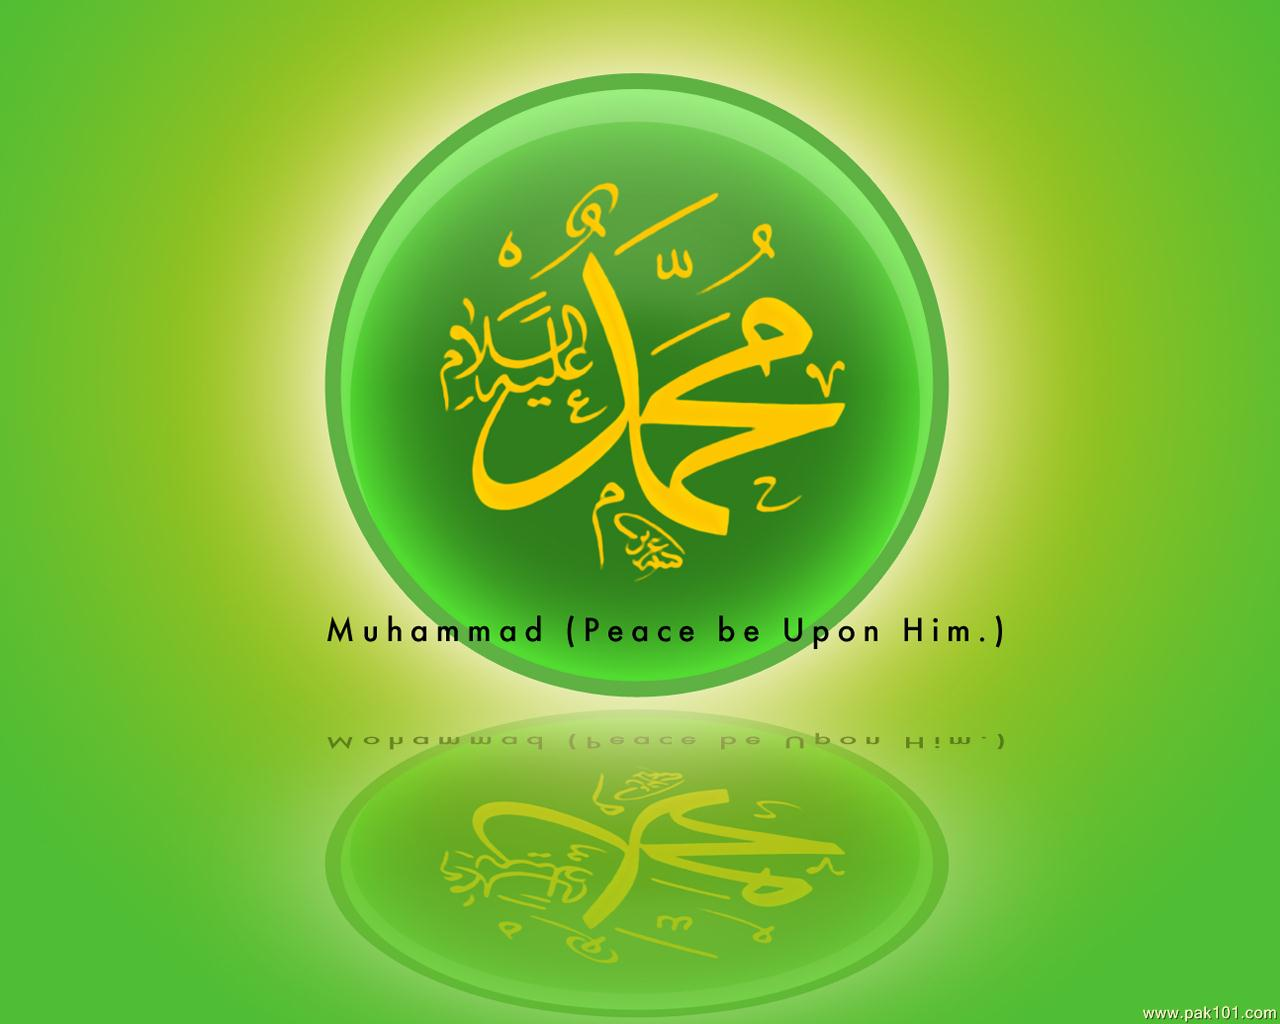 Free Wallpaper For Iphone 5s Muhammad Pak Hd Wallpapers Free For Desktop Hd Wallpaper